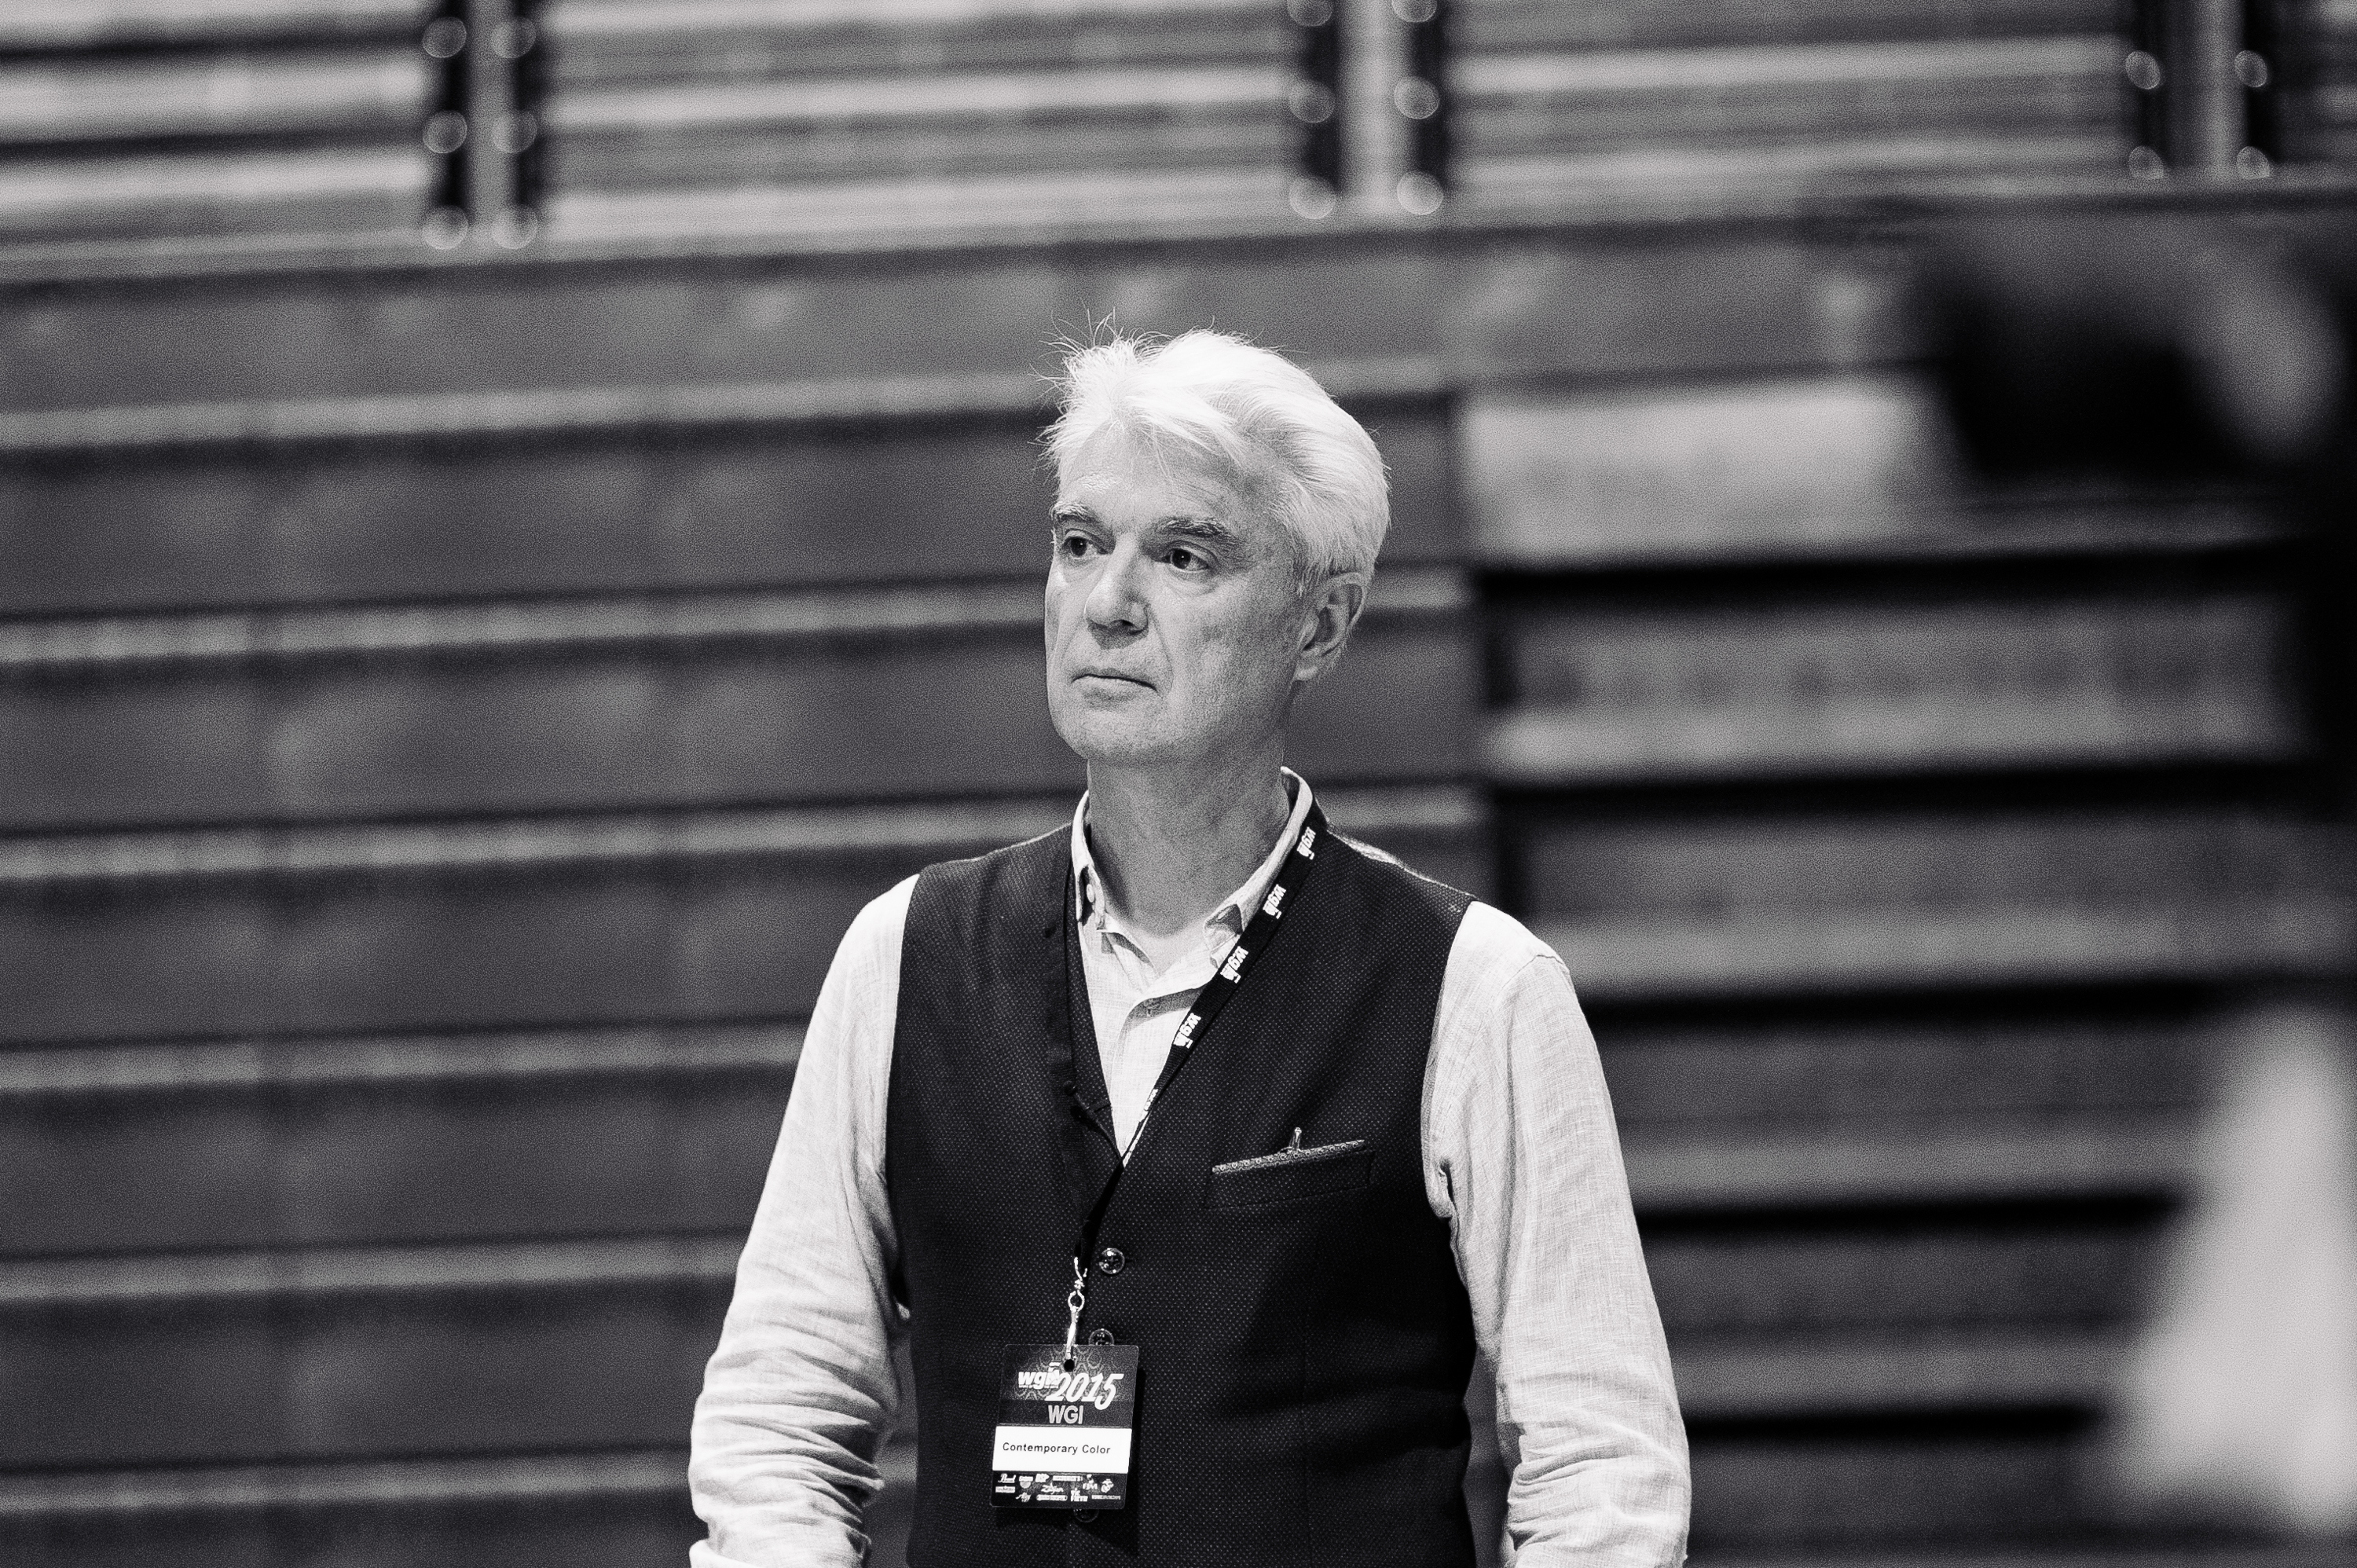 David Byrne Pens Op-Ed Asking for Streaming Transparency